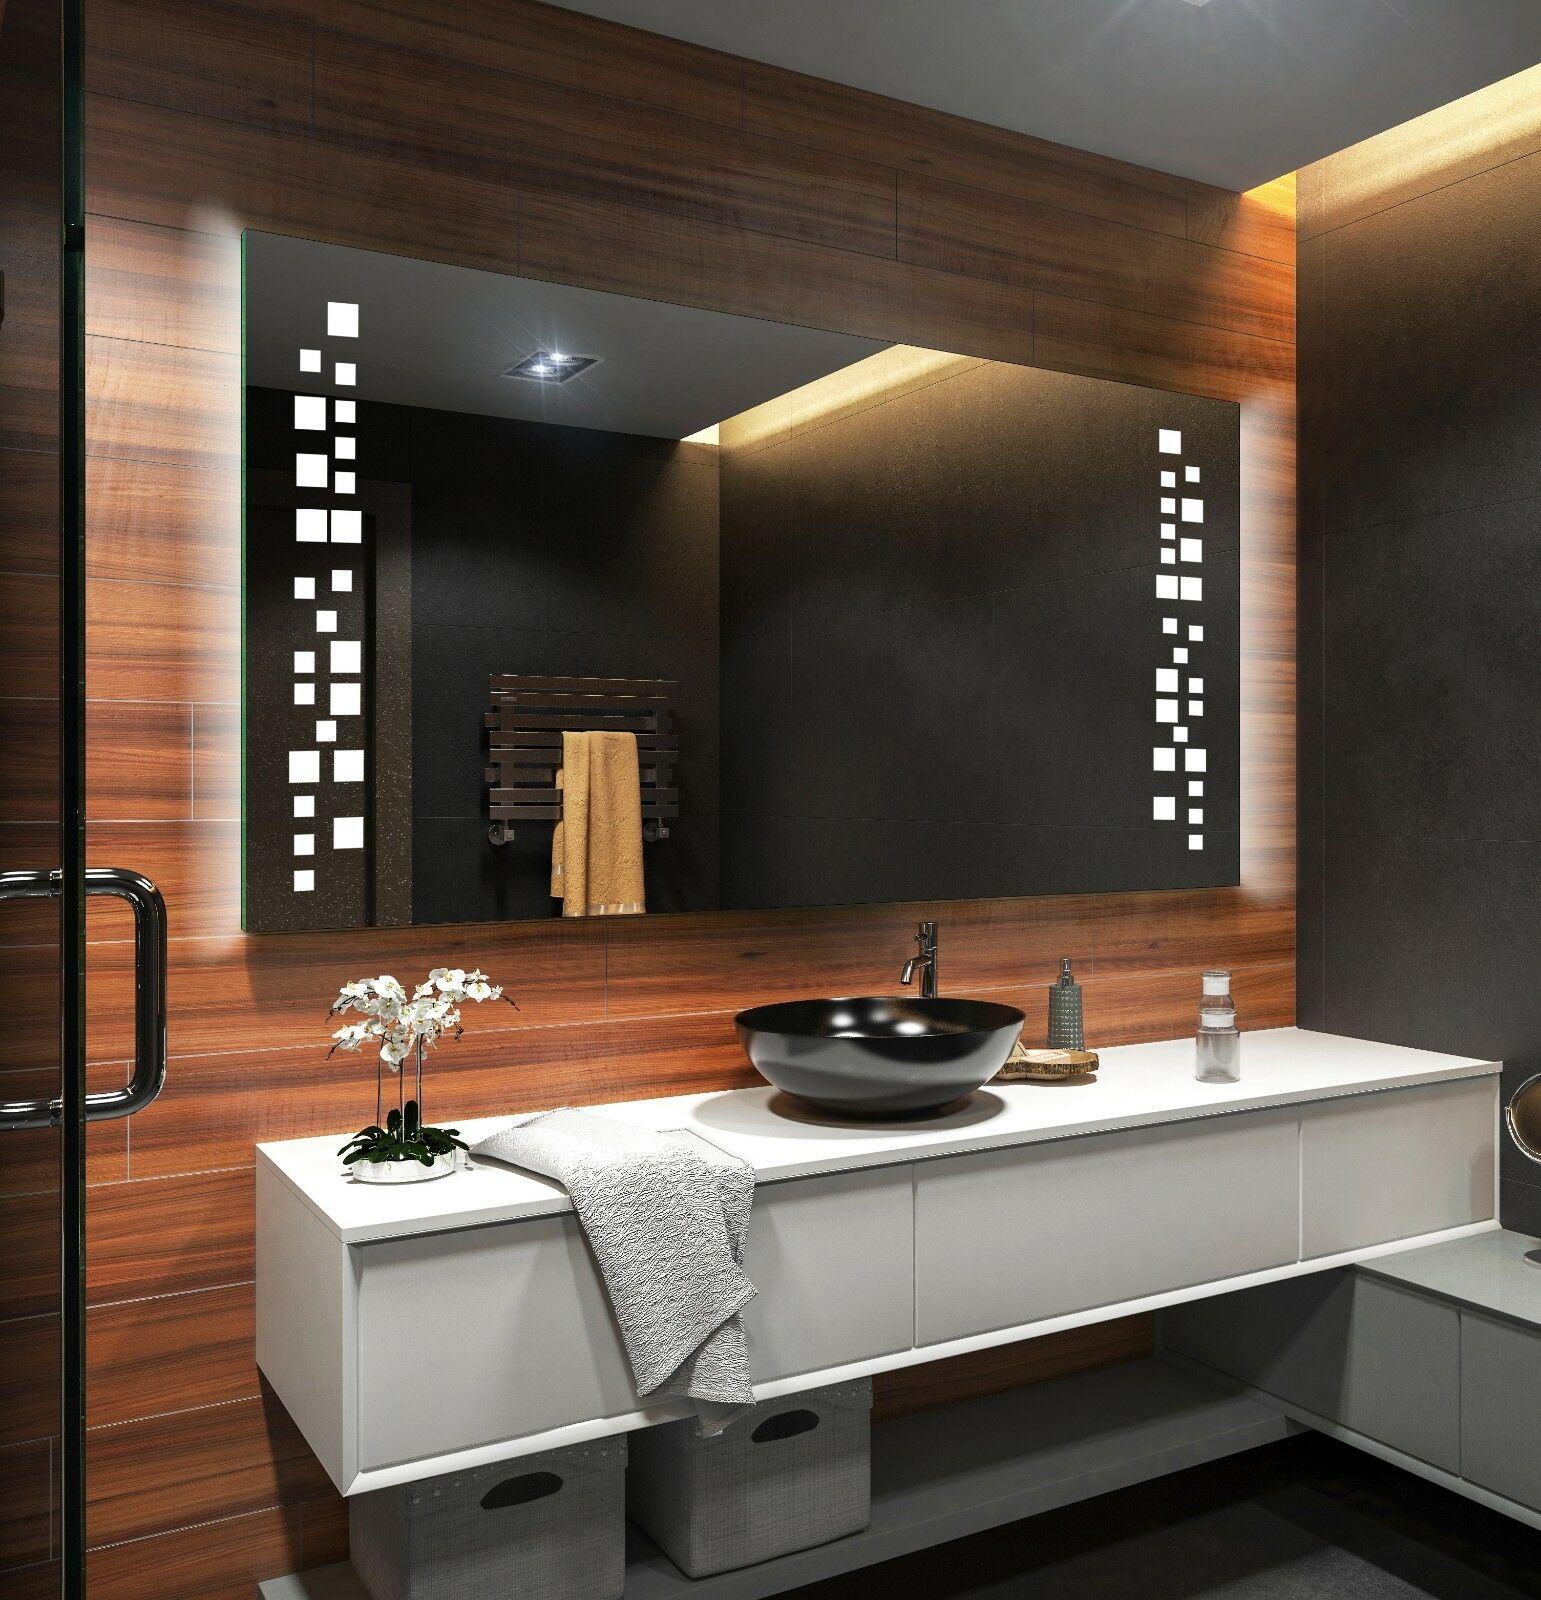 beau miroir salle de bain lumineux led sur mesure l38. Black Bedroom Furniture Sets. Home Design Ideas